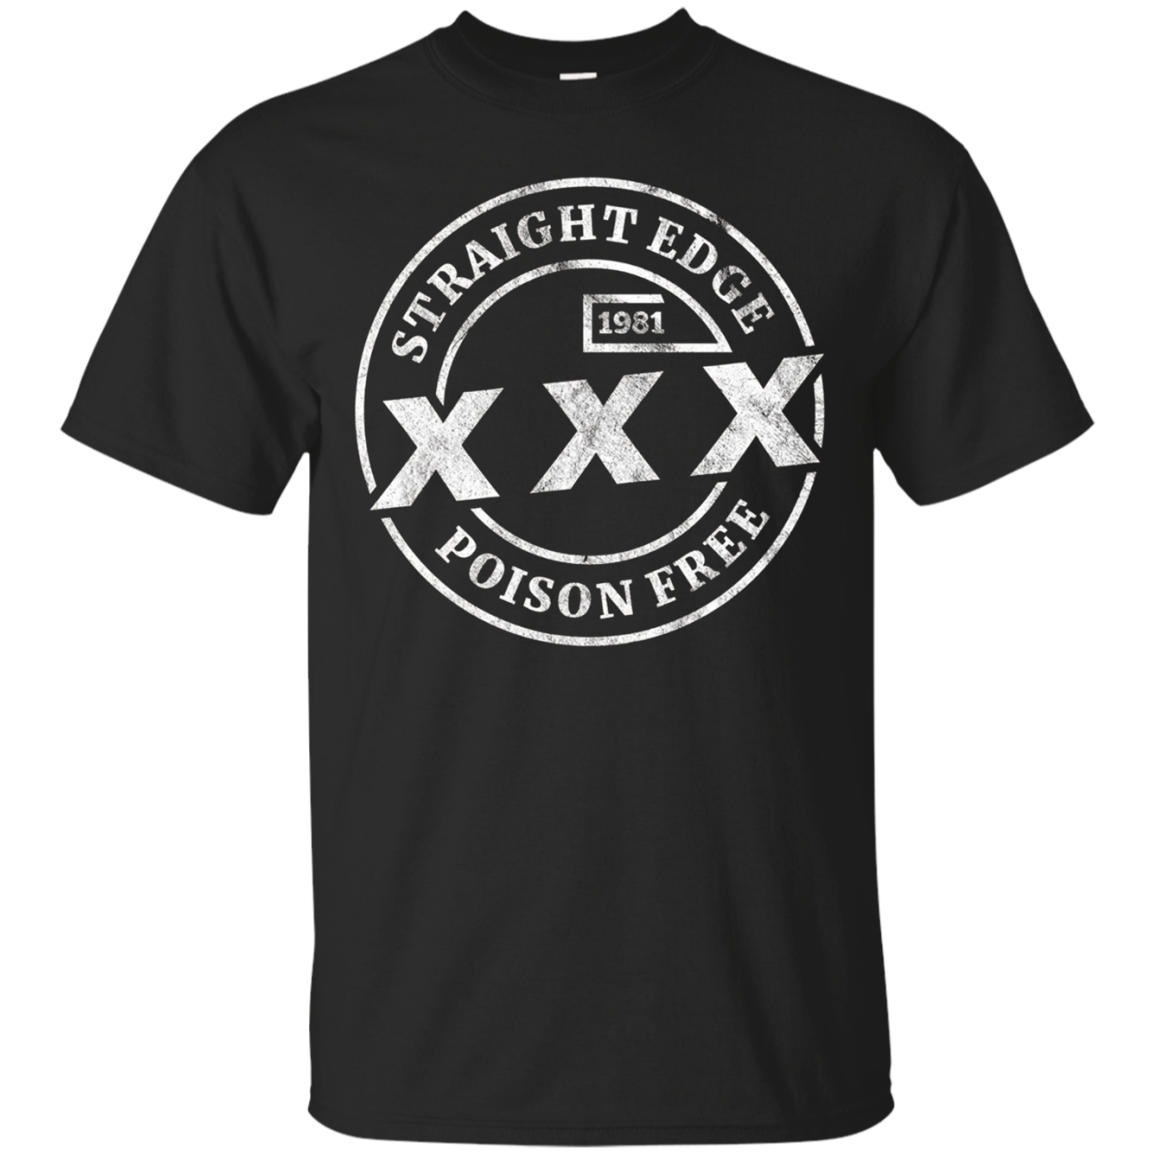 Straight Edge T-Shirt - XXX Poison Free